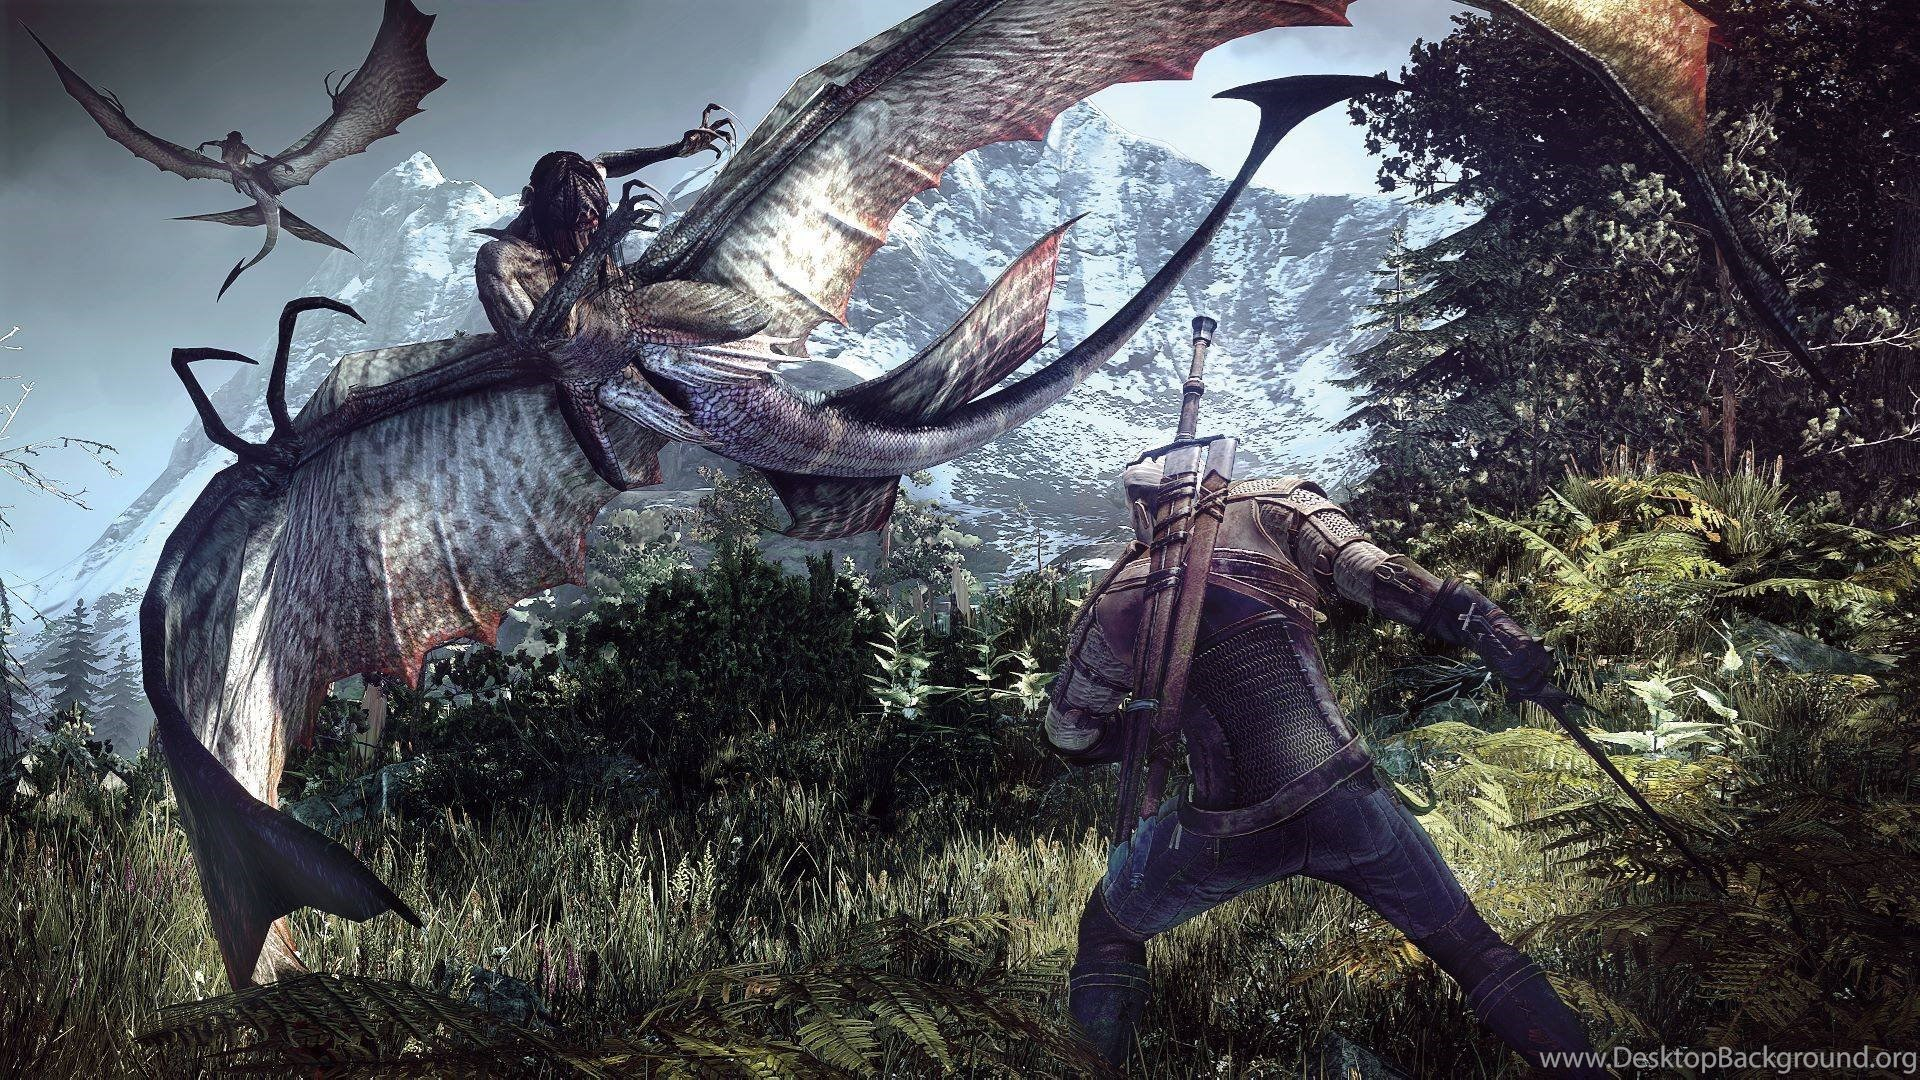 304 The Witcher 3 Wild Hunt Hd Wallpapers Desktop Background